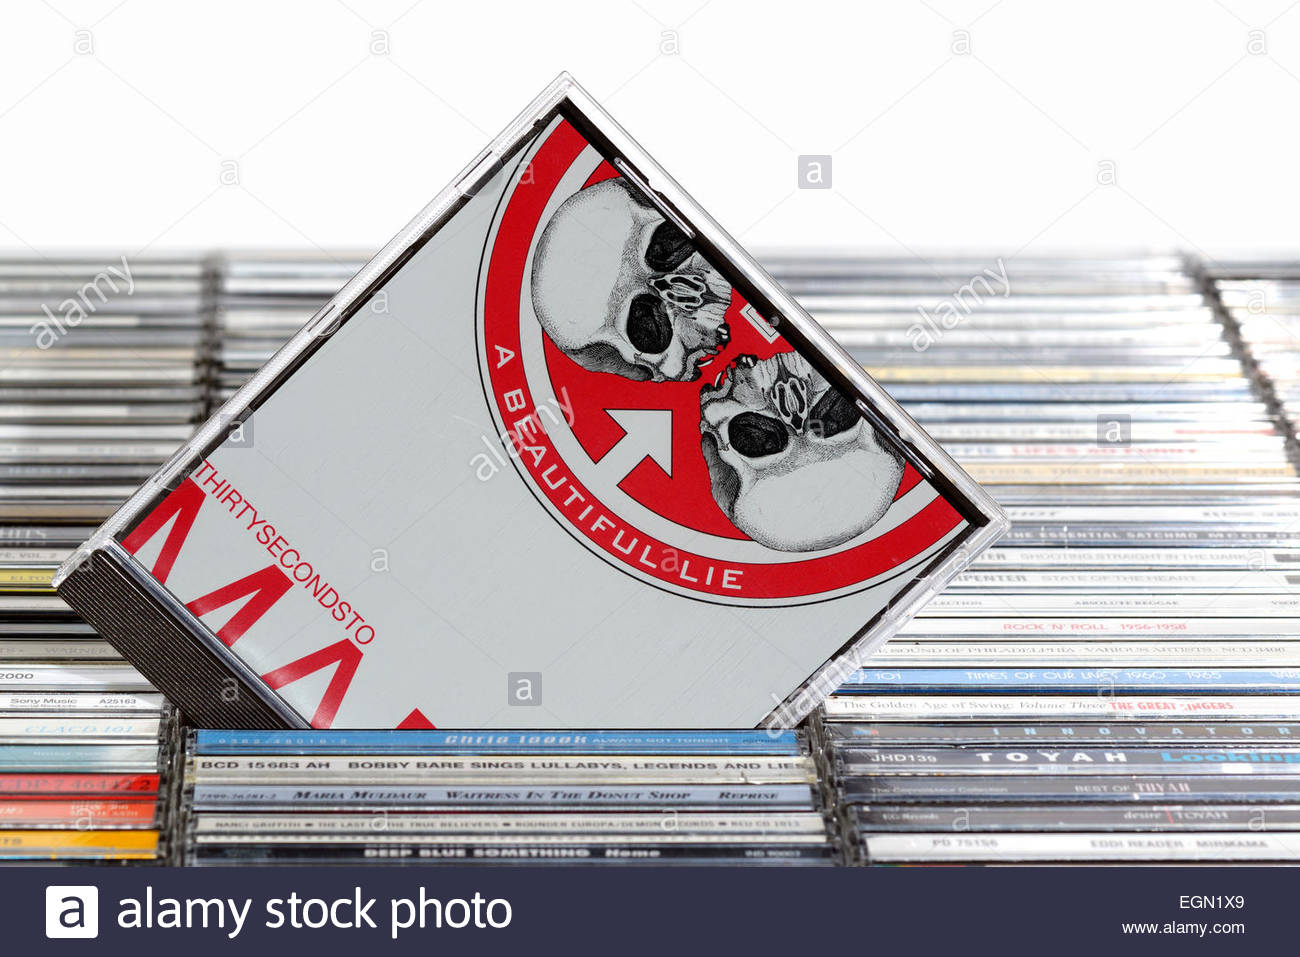 Thirty Seconds to Mars 2007 3rd album A Beautiful Lie, piled music CD cases, England - Stock Image